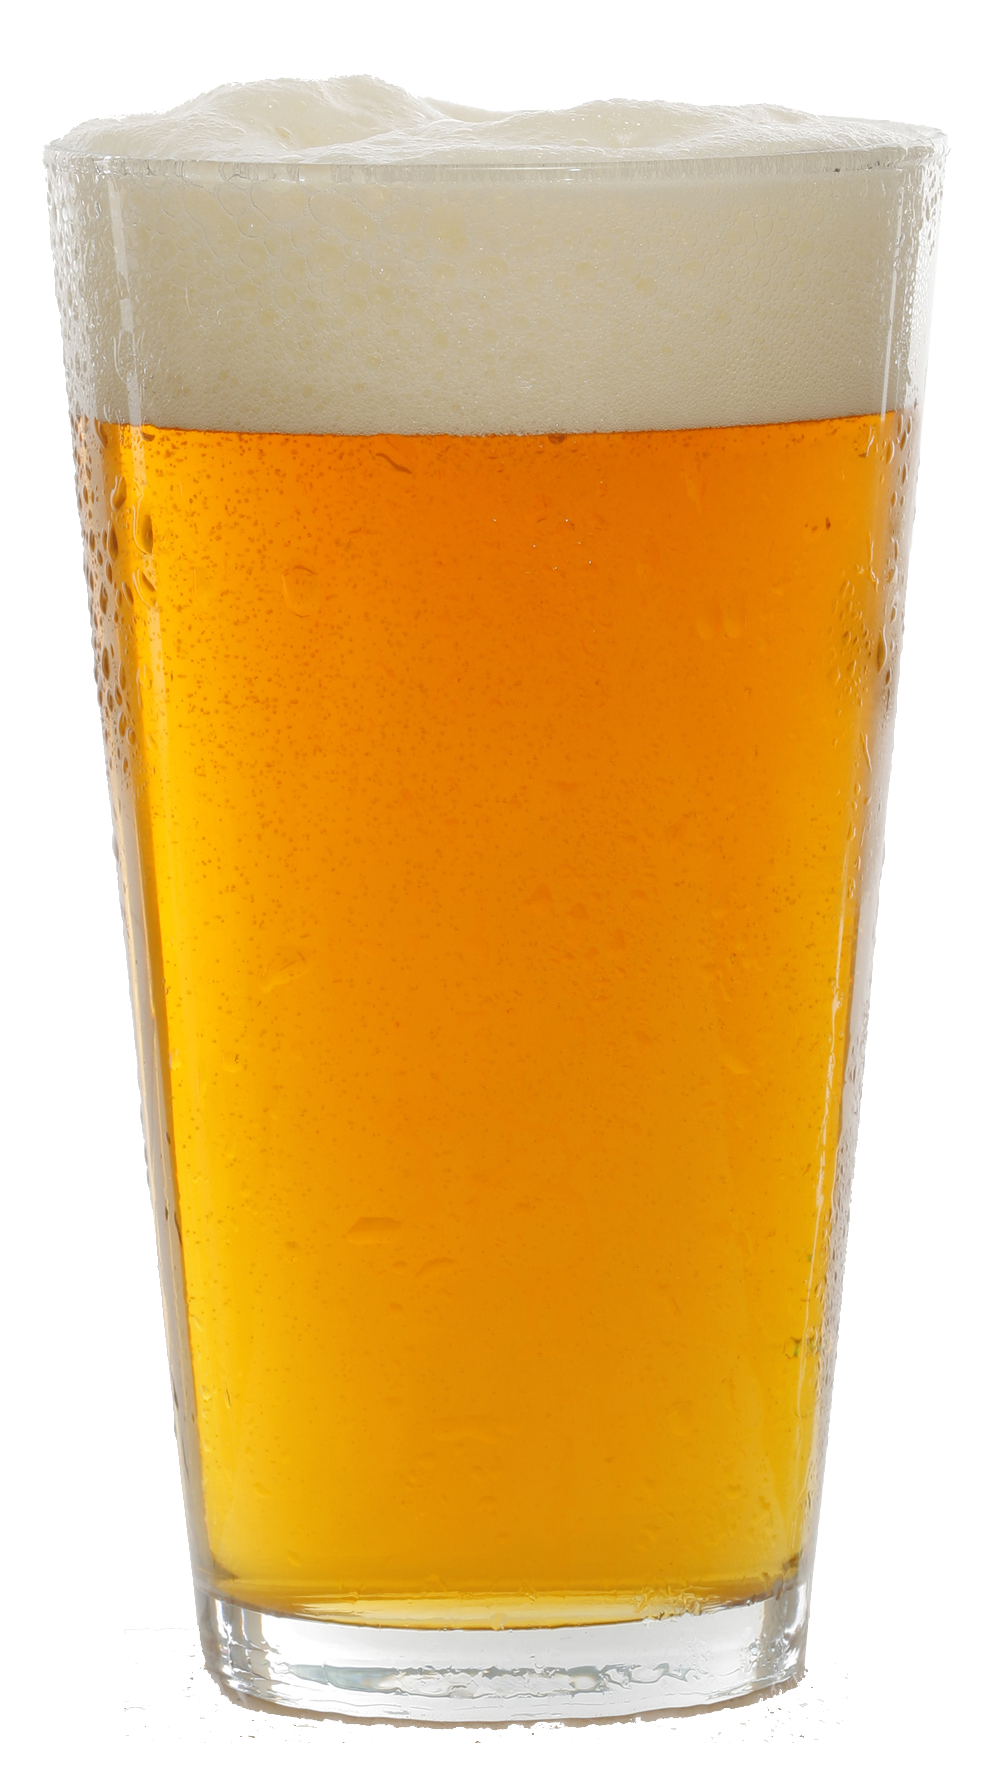 transparent beer mug png